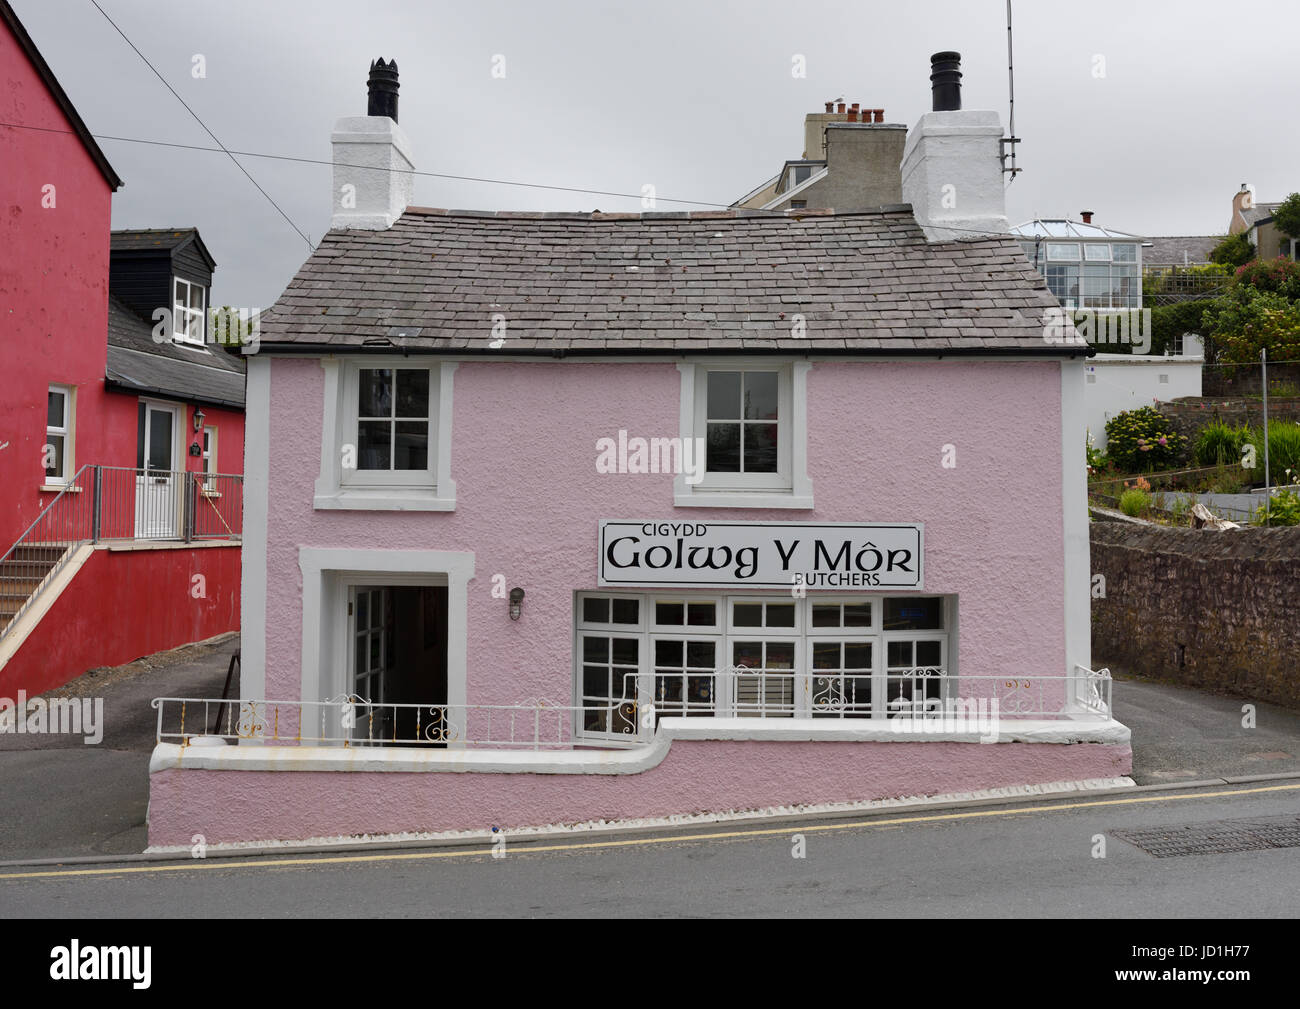 Pink painted butcher shop with slate roof, built on slope in west wales - Stock Image